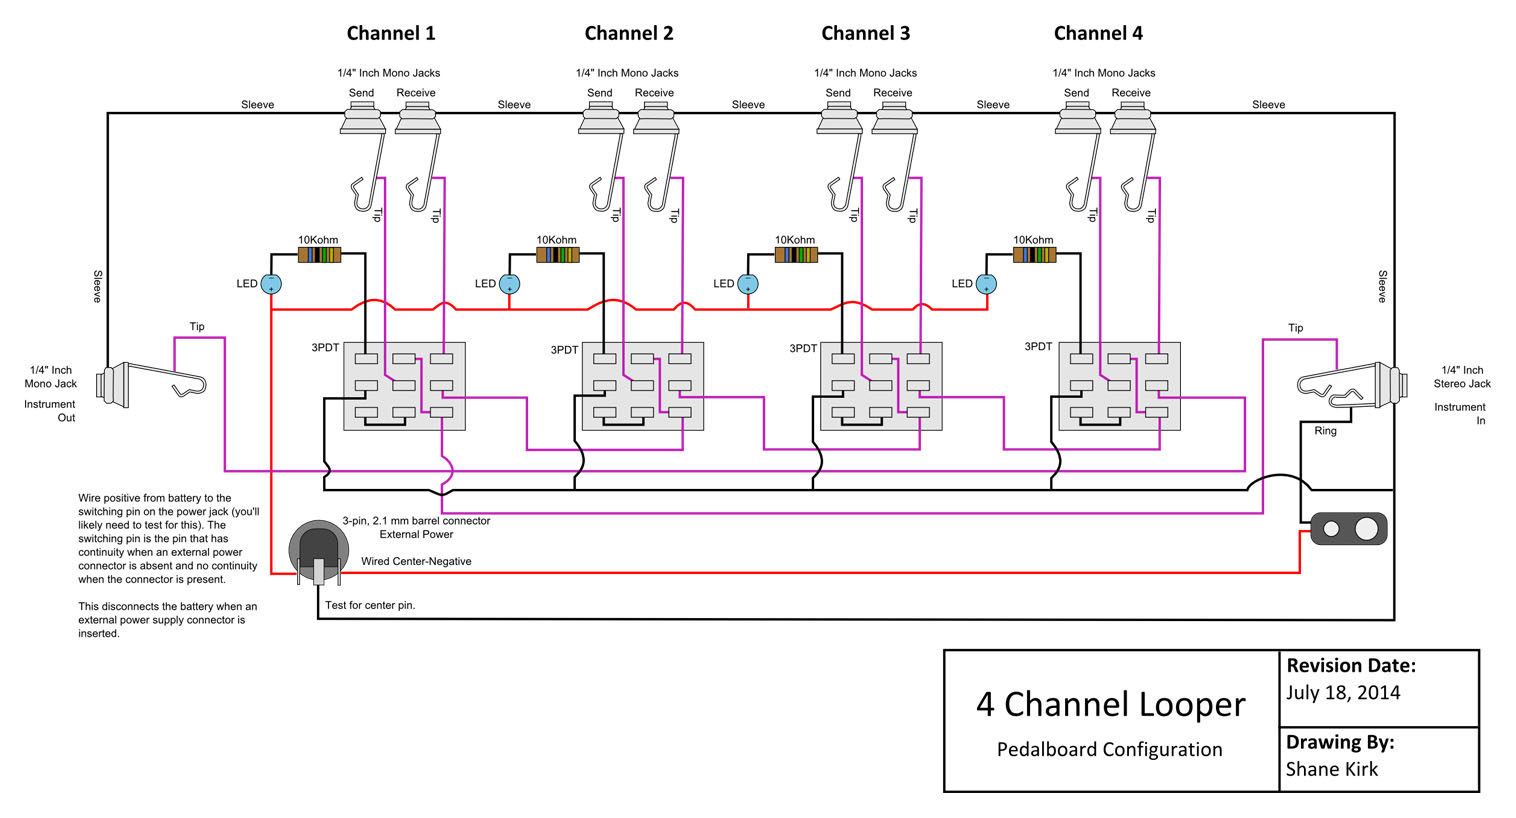 true tuc 27f wiring diagram Download-True Bypass Looper Wiring Diagram 20-i